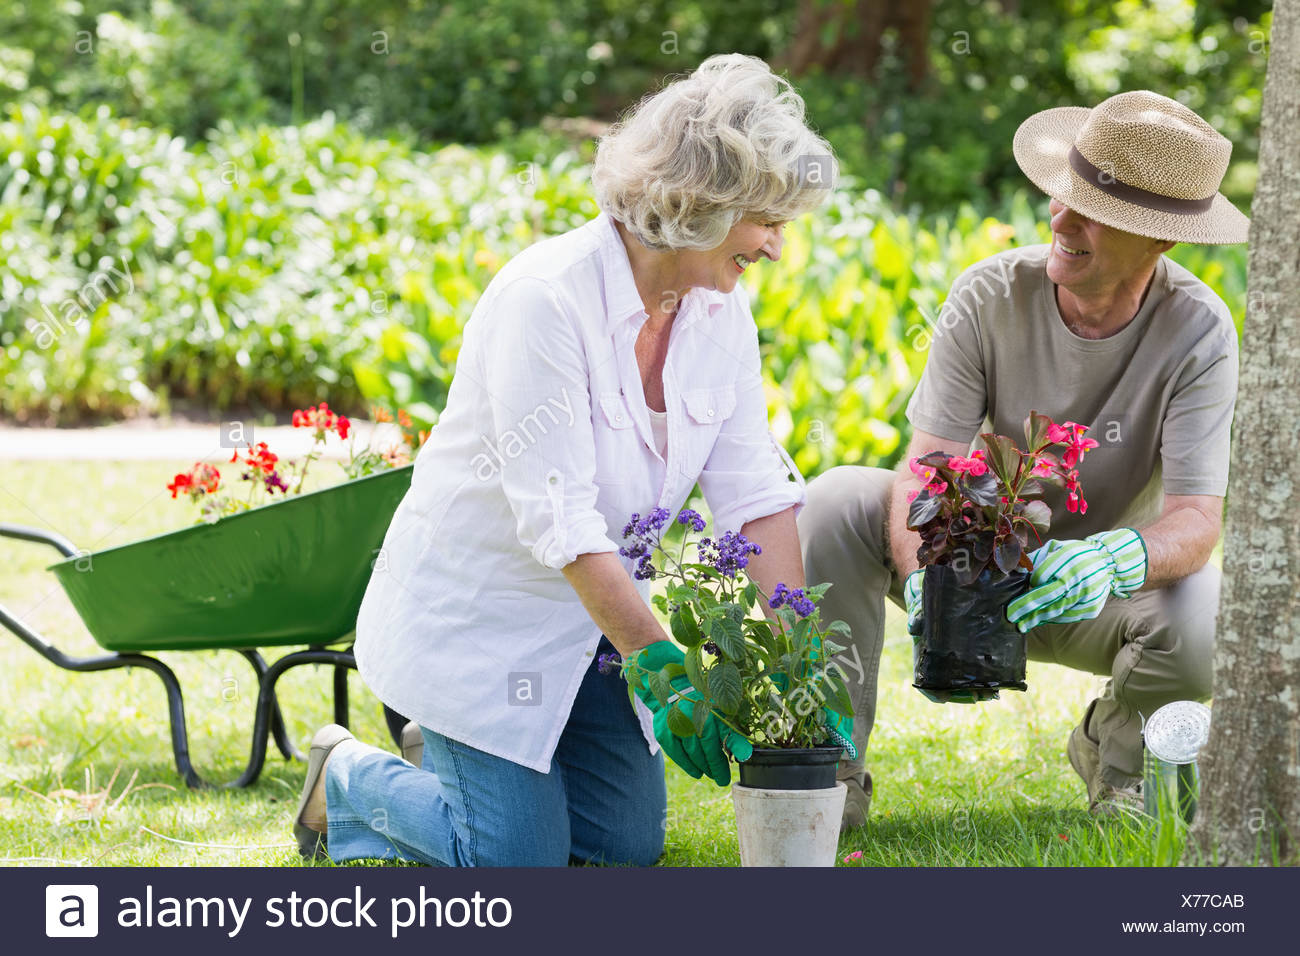 Couple engaged in gardening Photo Stock